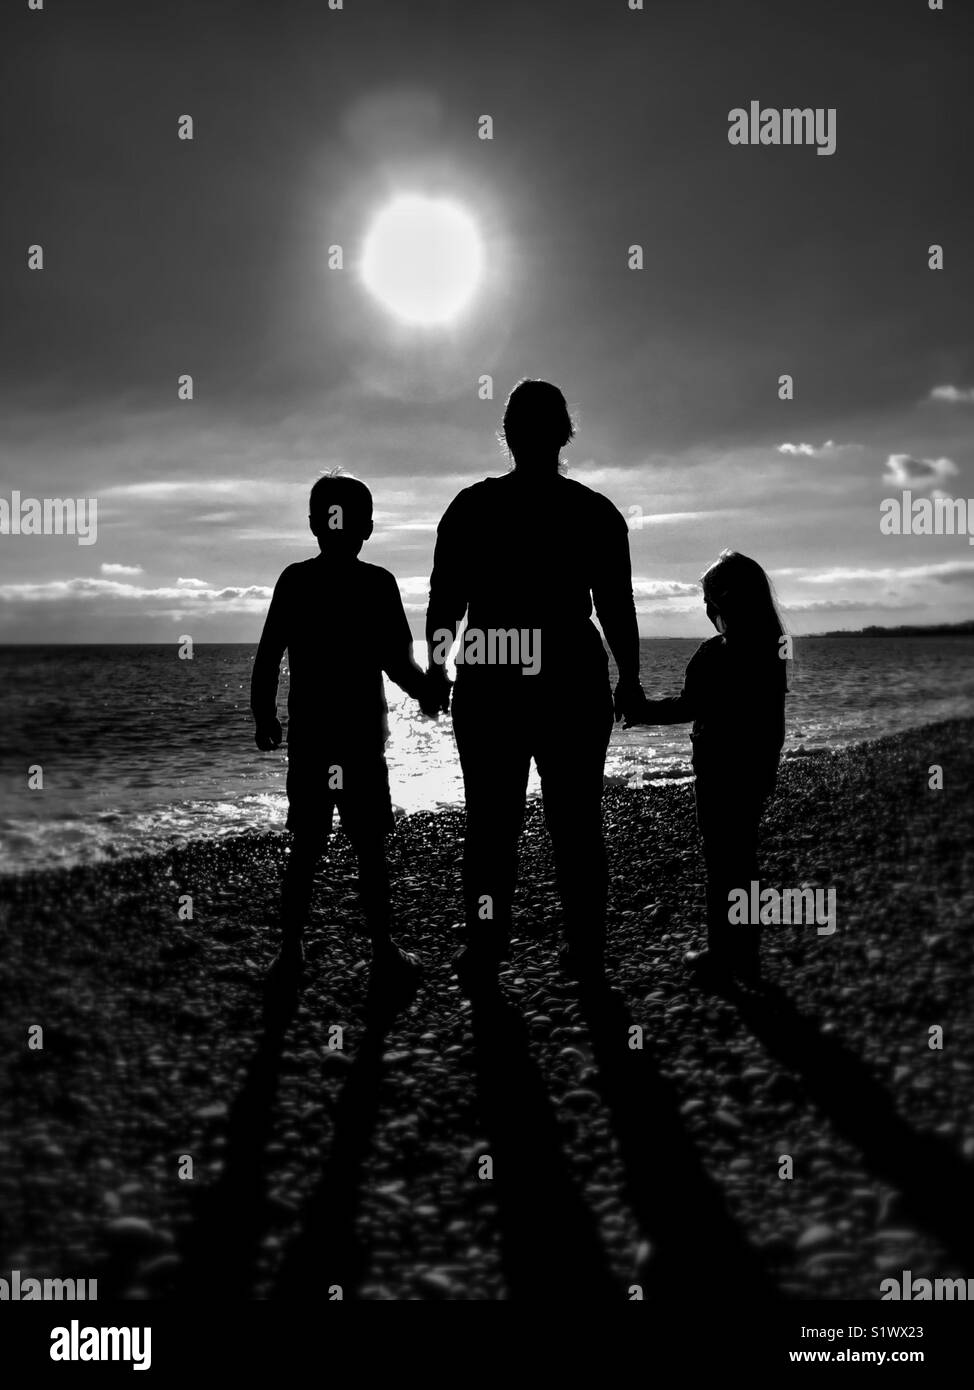 A mother/wife/lone parent holds the hands of (her?) 2 children as they stand on a beach & gaze into the bright light/sunshine(?) Stock Photo